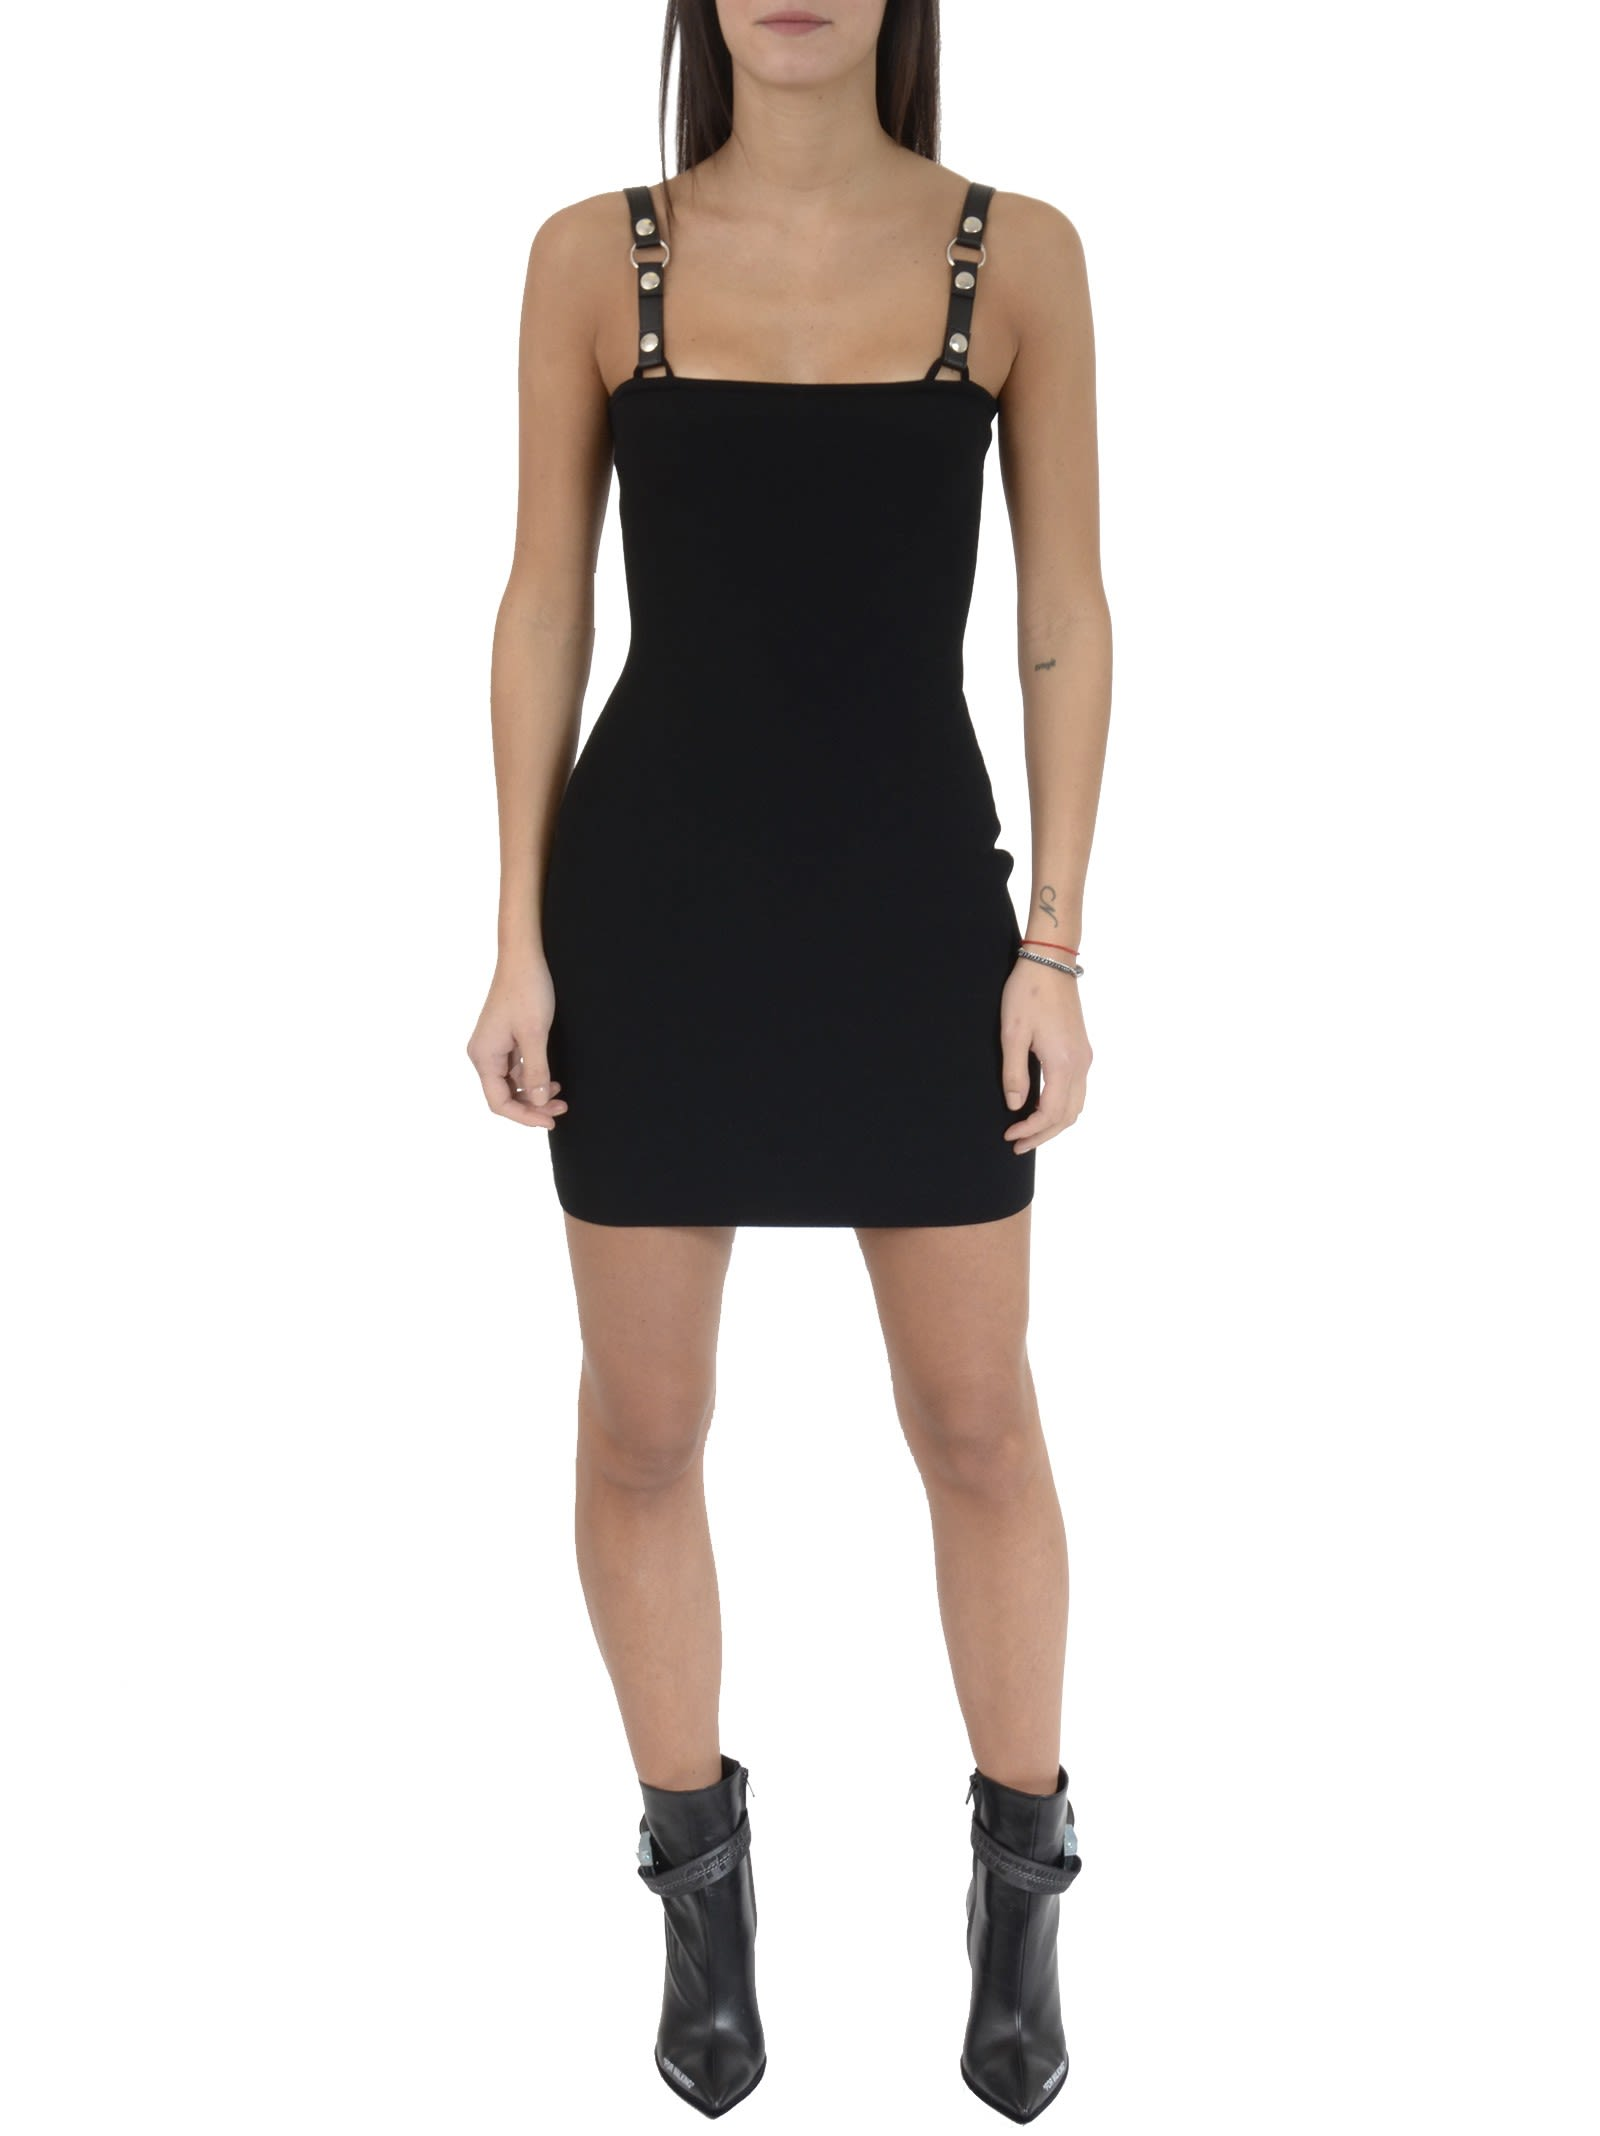 Alyx Knit Dress With Leather Strap